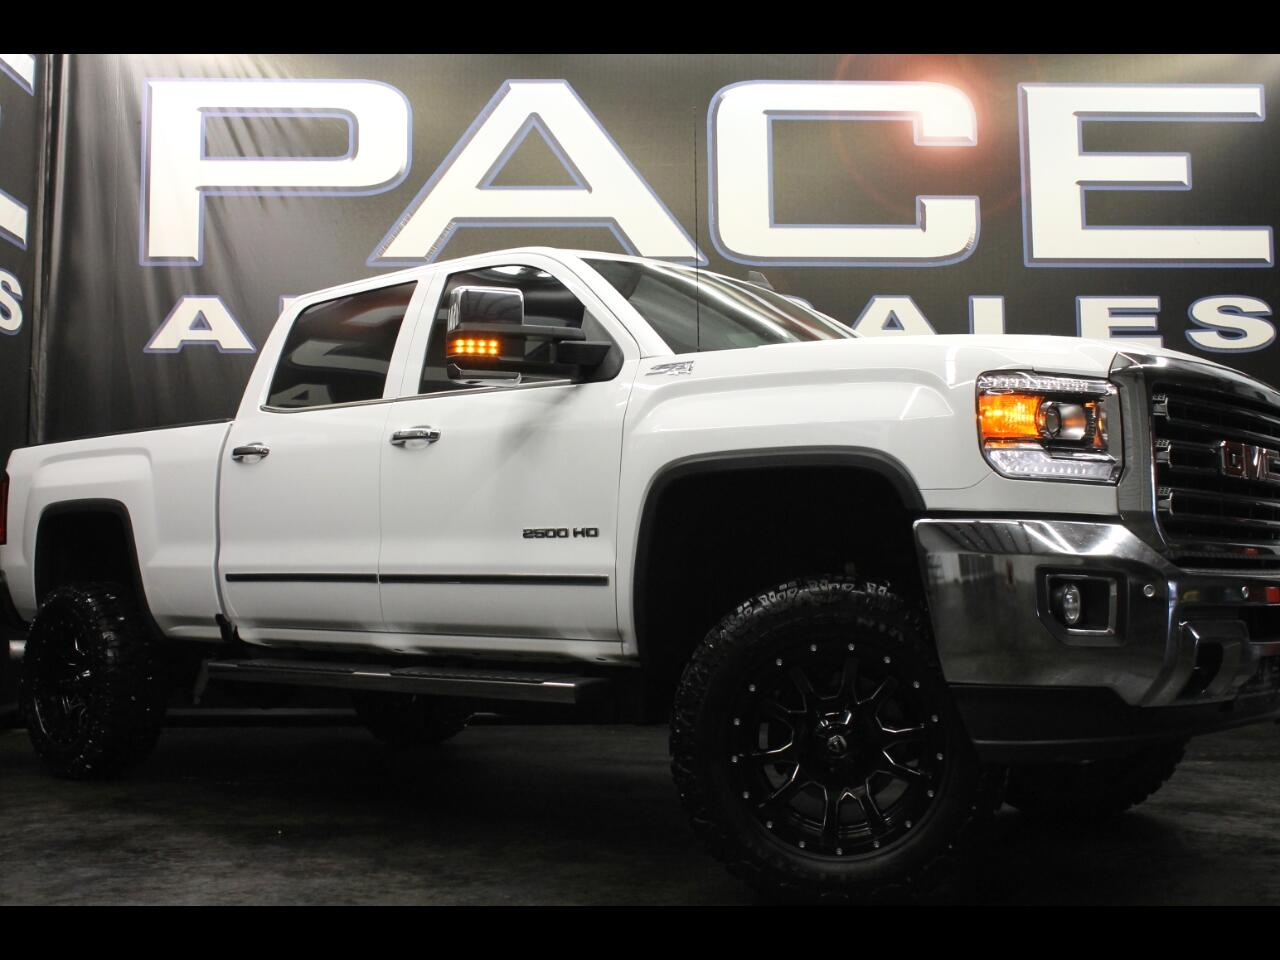 2016 GMC Sierra 2500HD 4wd Crew Cab SLT Z71 Lifted Custom